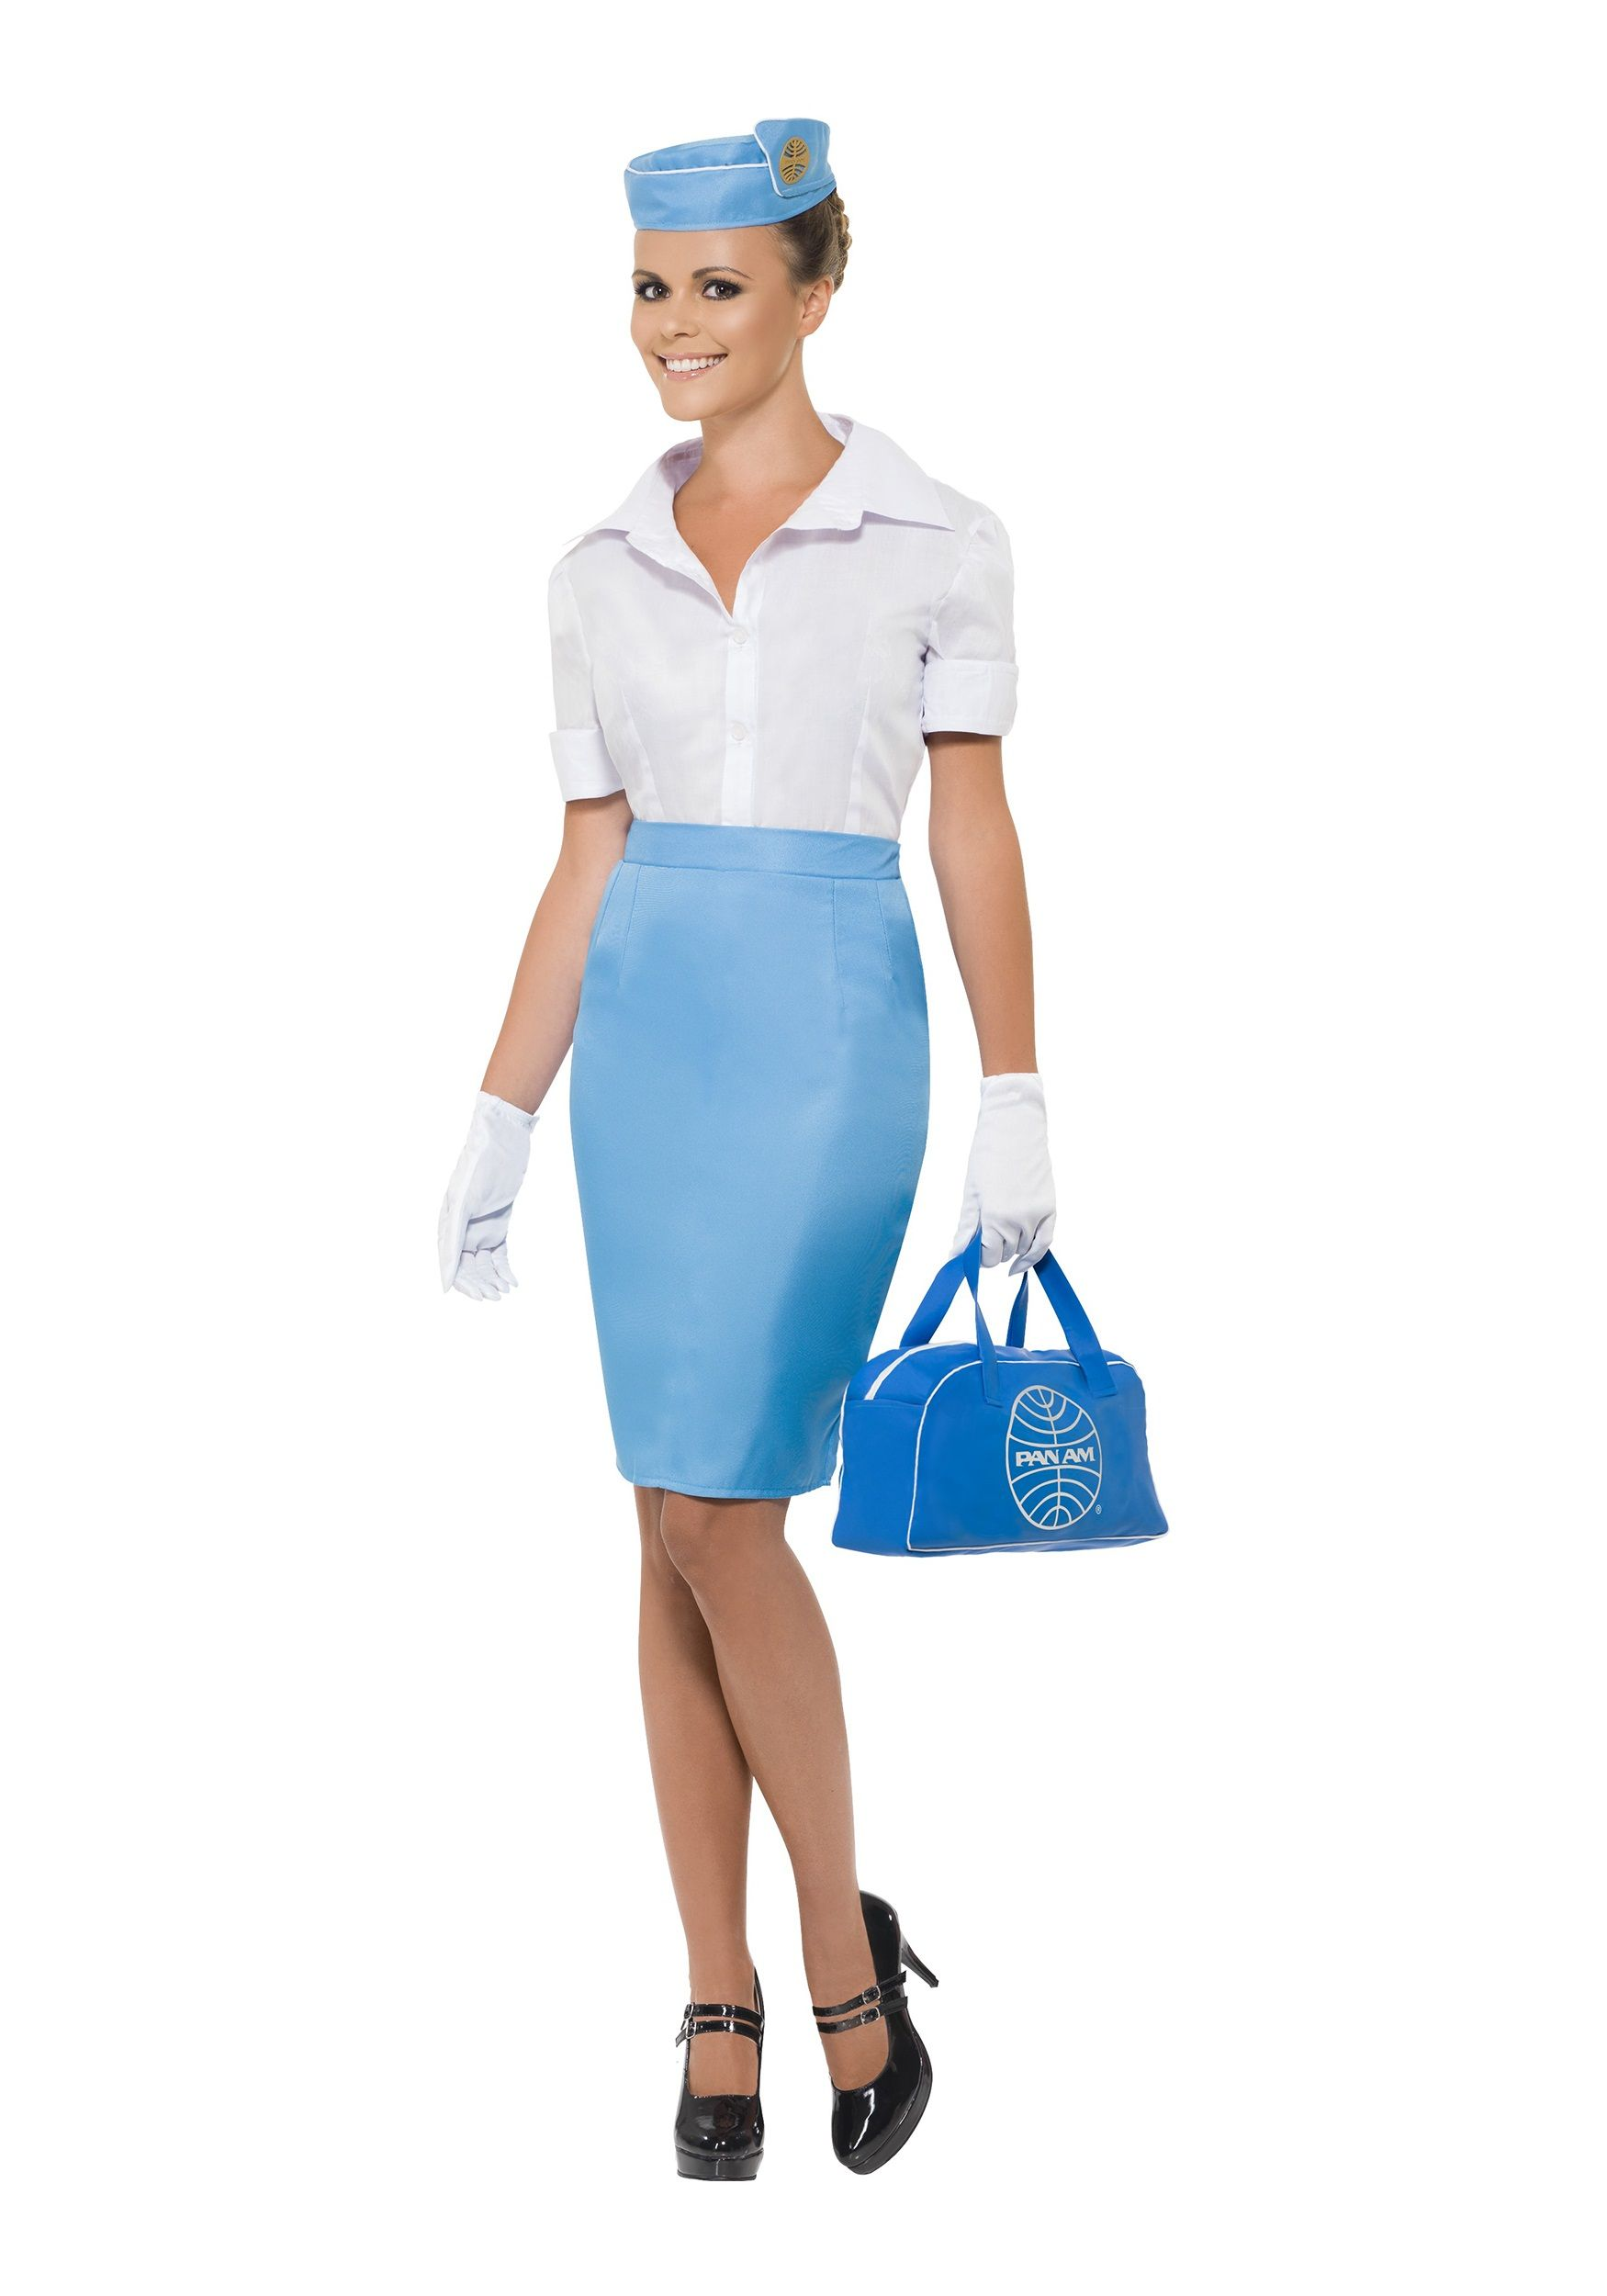 how to become a flight attendant uk